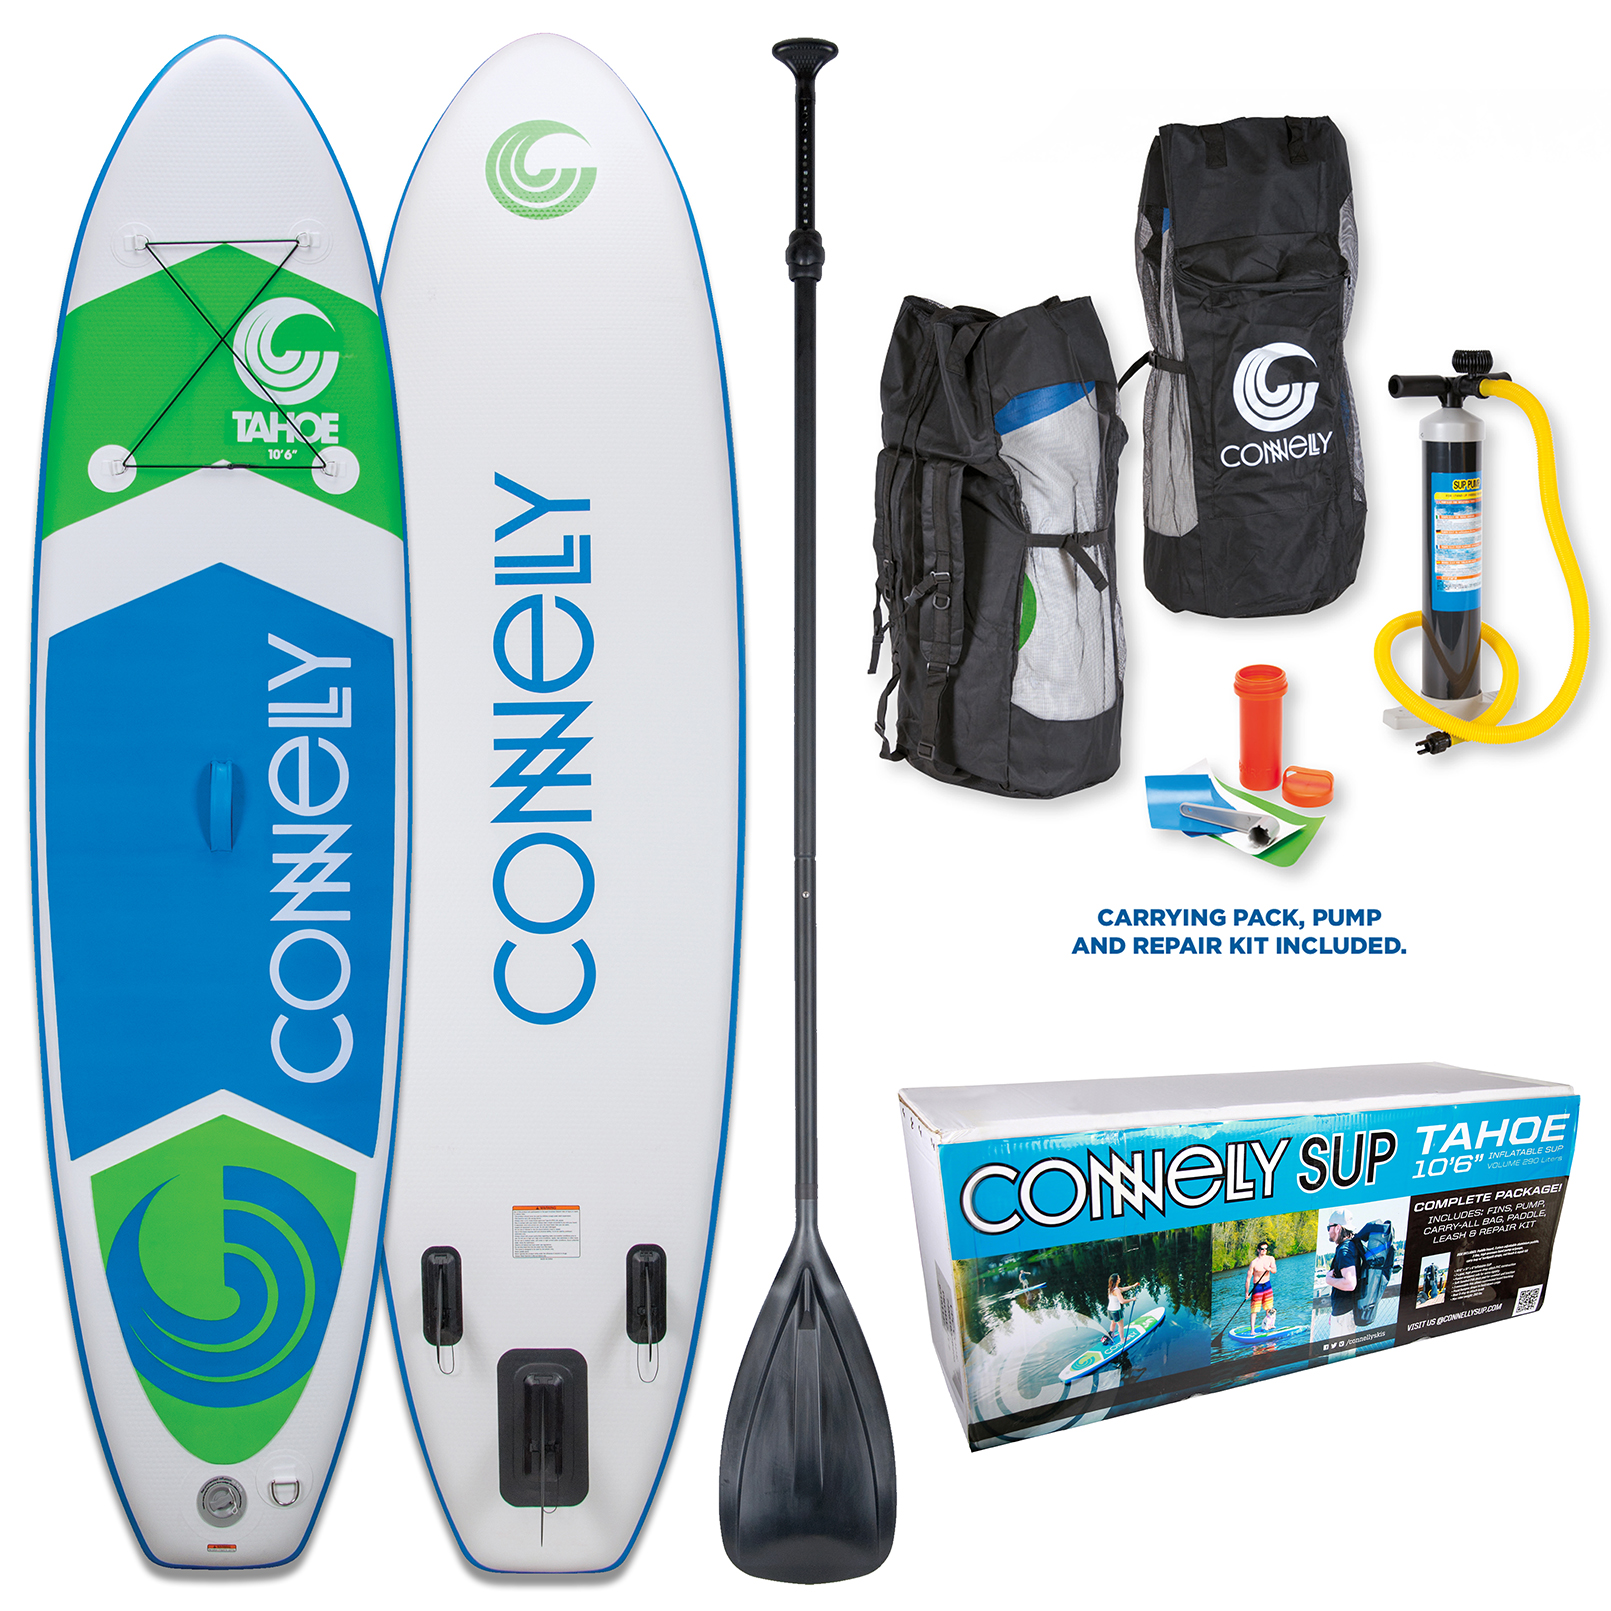 2017 TAHOE INFLATABLE STAND-UP PADDLE BOARD - PACKAGE CONNELLY